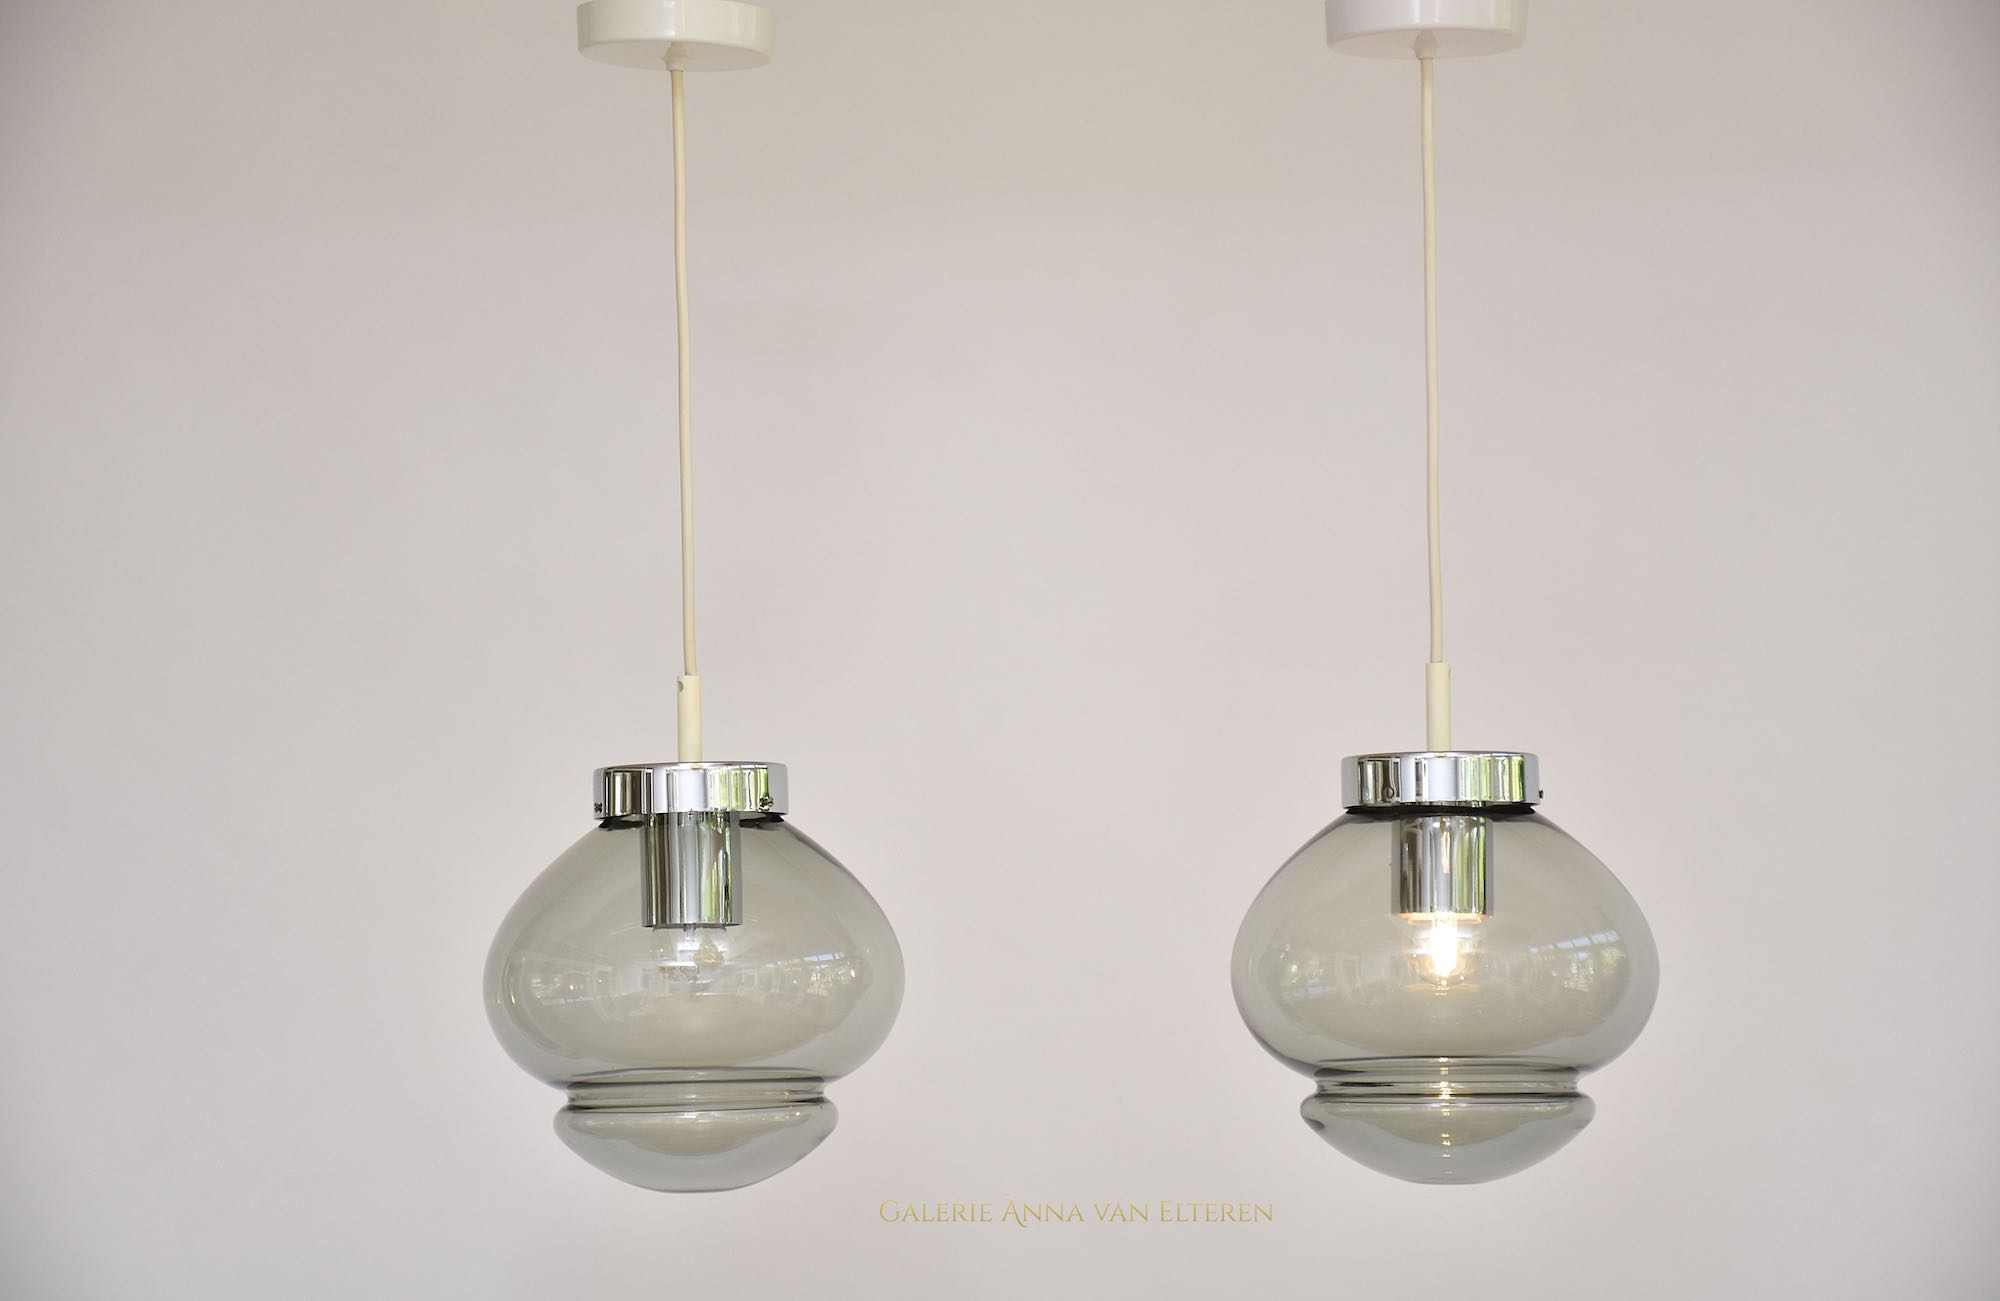 A pair of RAAK Amsterdam ceiling lamps